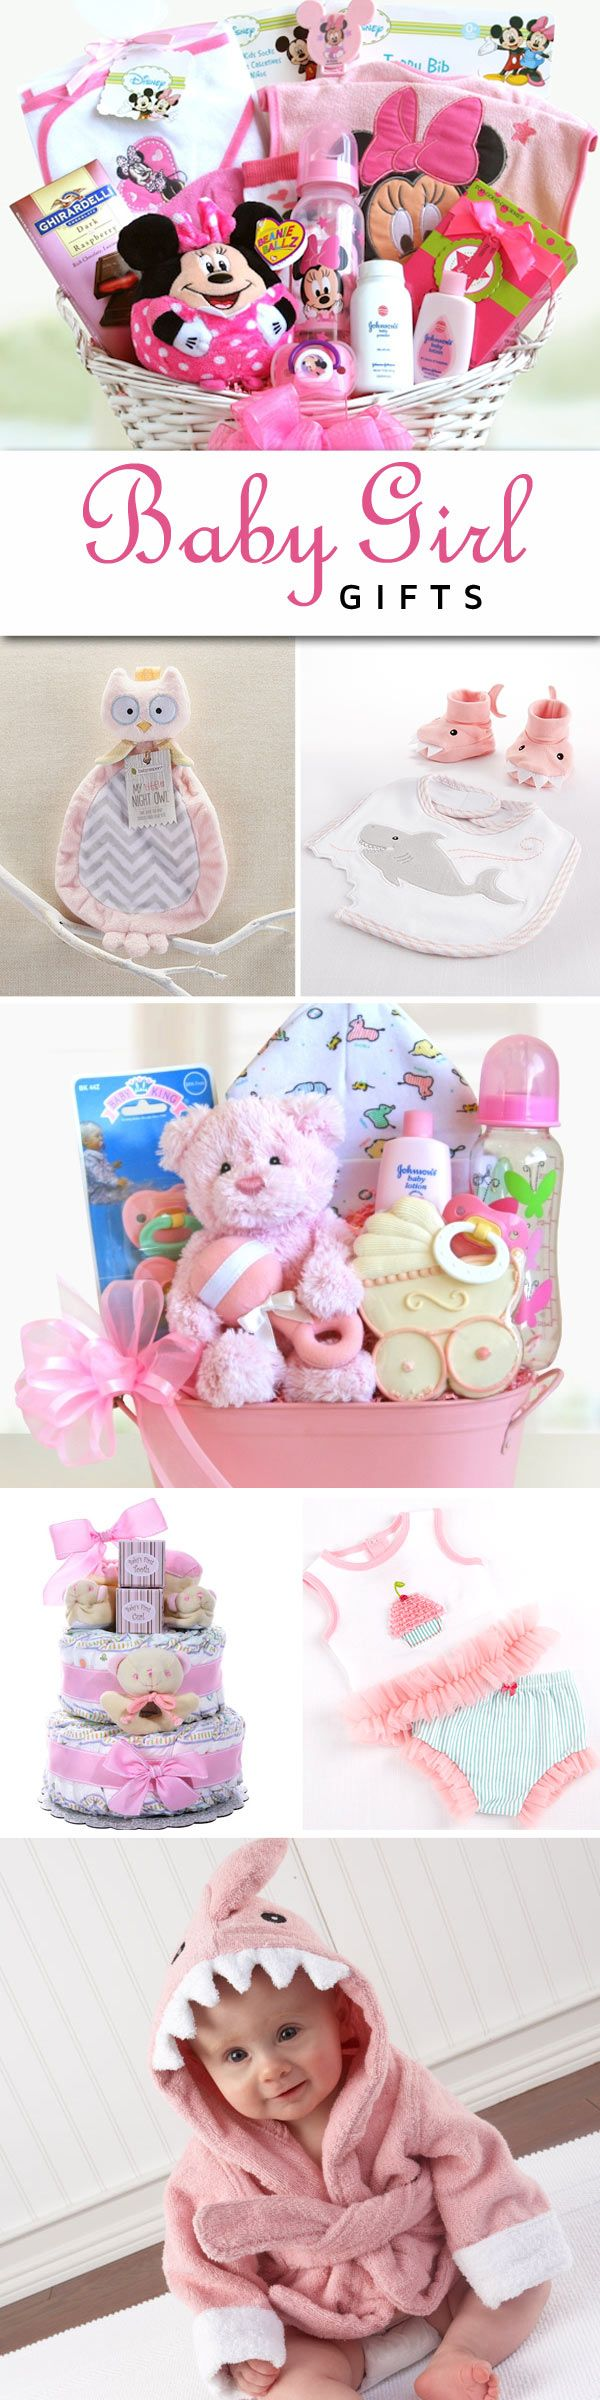 Baby Girl Gift items.